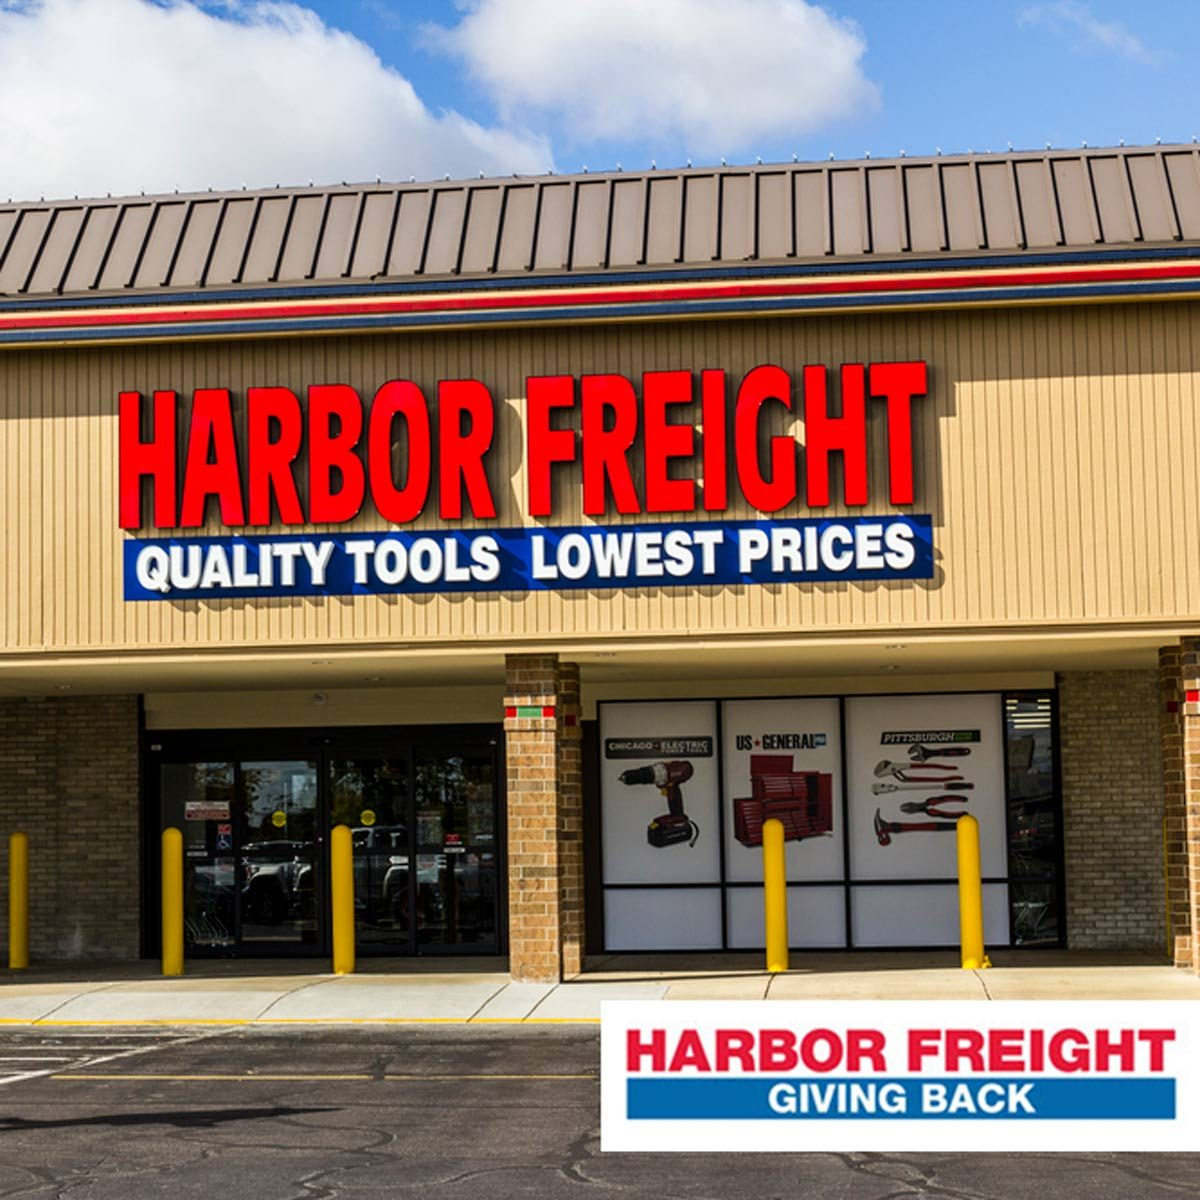 Harbor Freight Gives Back To Veterans Schools And First